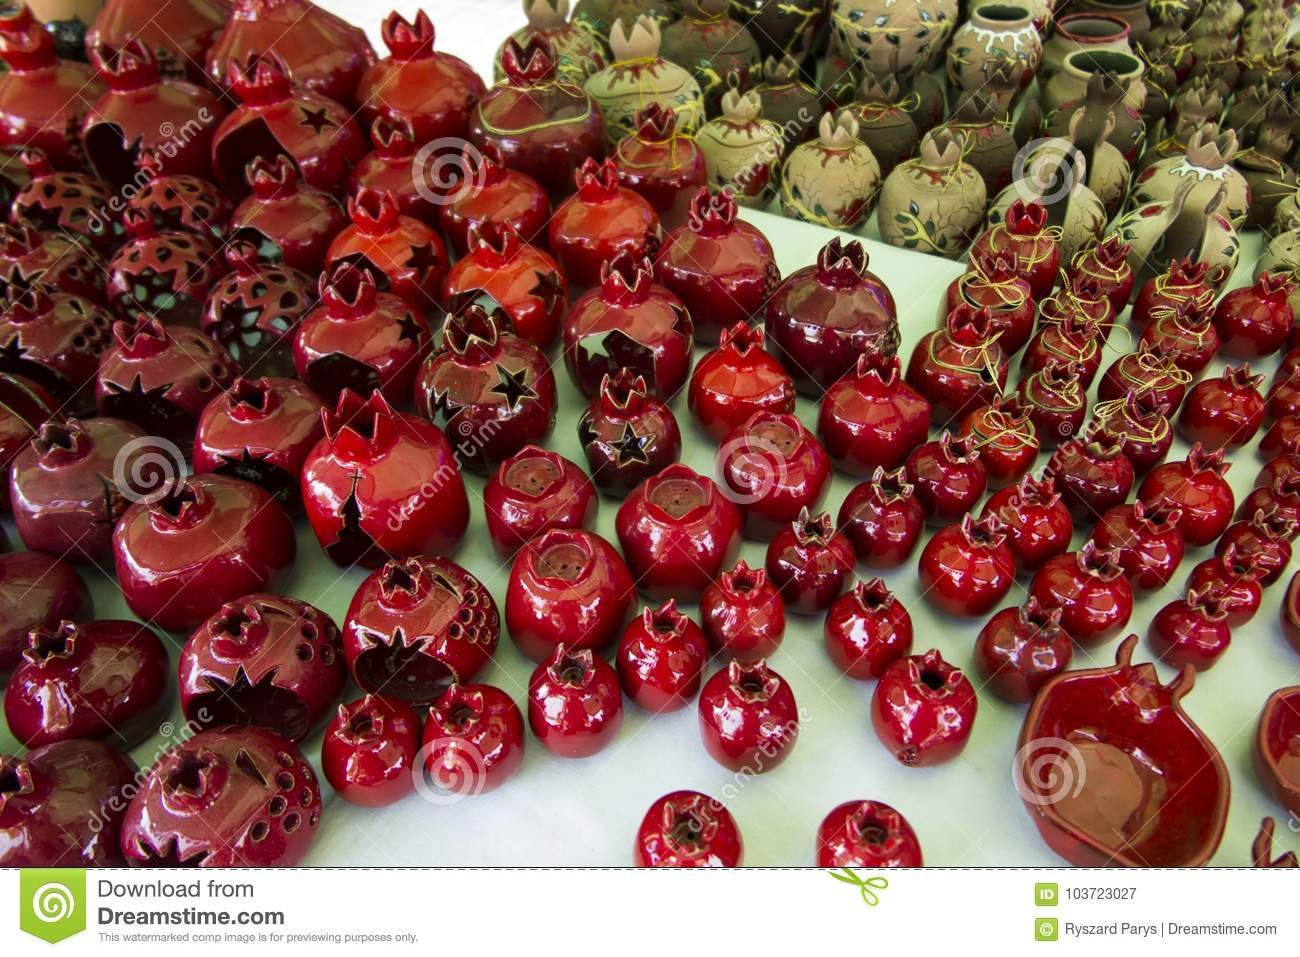 Souvenirs from Armenia with pomegranate motif